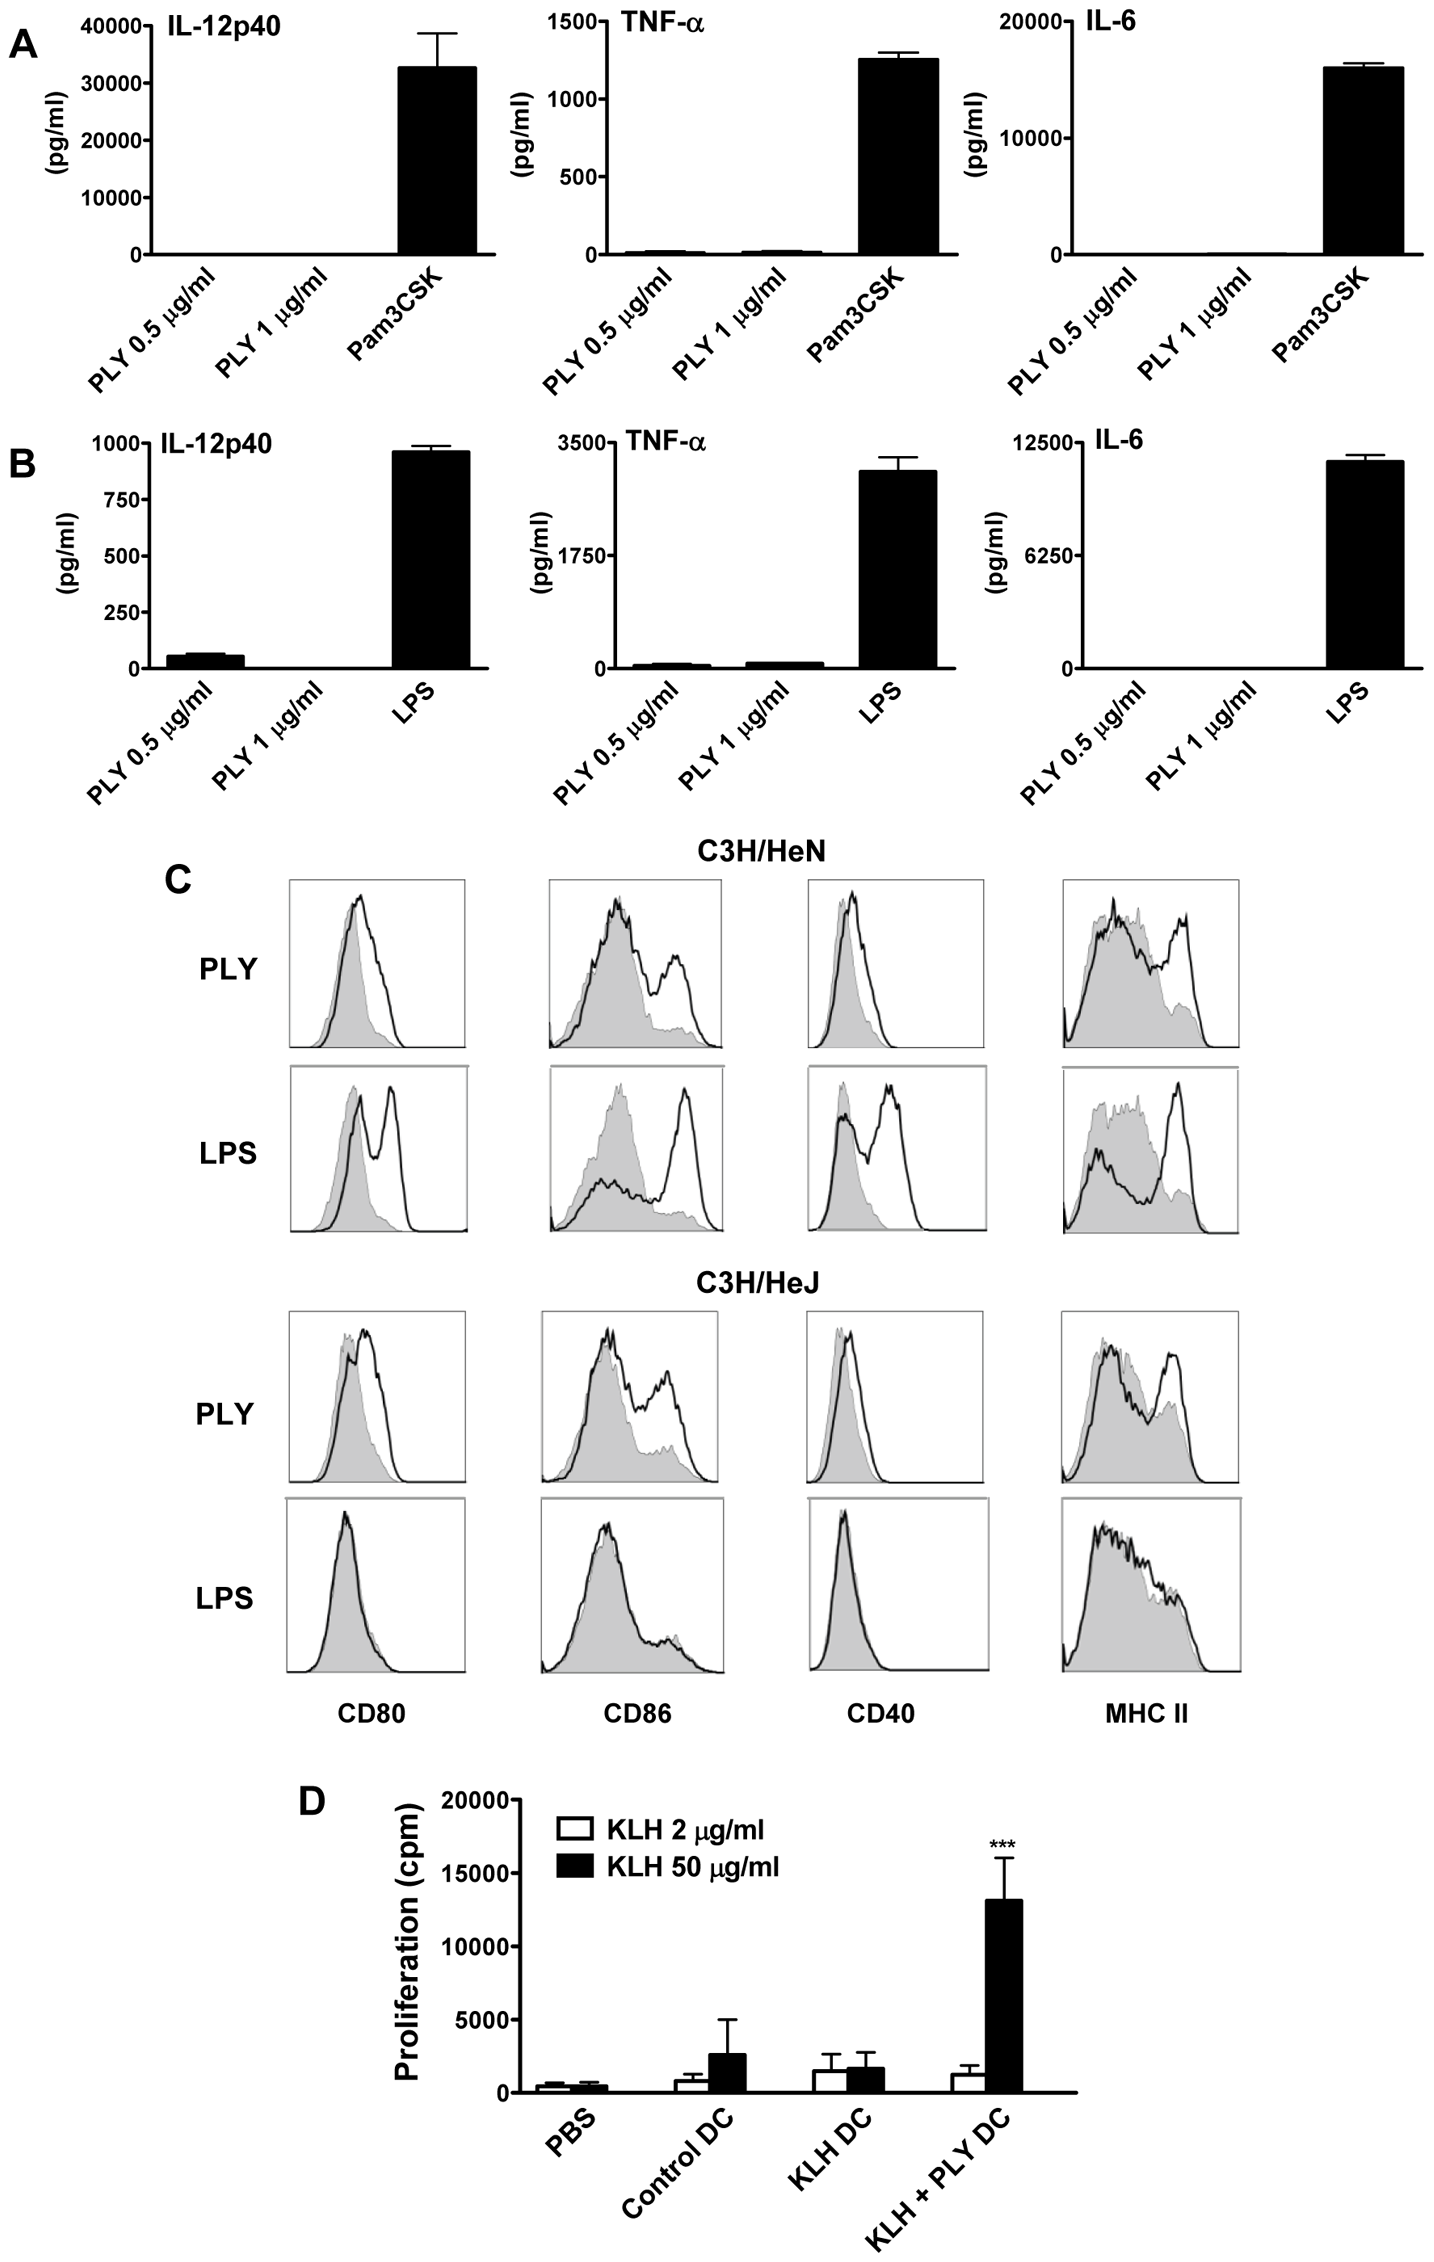 Endotoxin-free PLY does not induce cytokine production by DC or macrophages but does enhance DC maturation in a TLR4-independent manner.